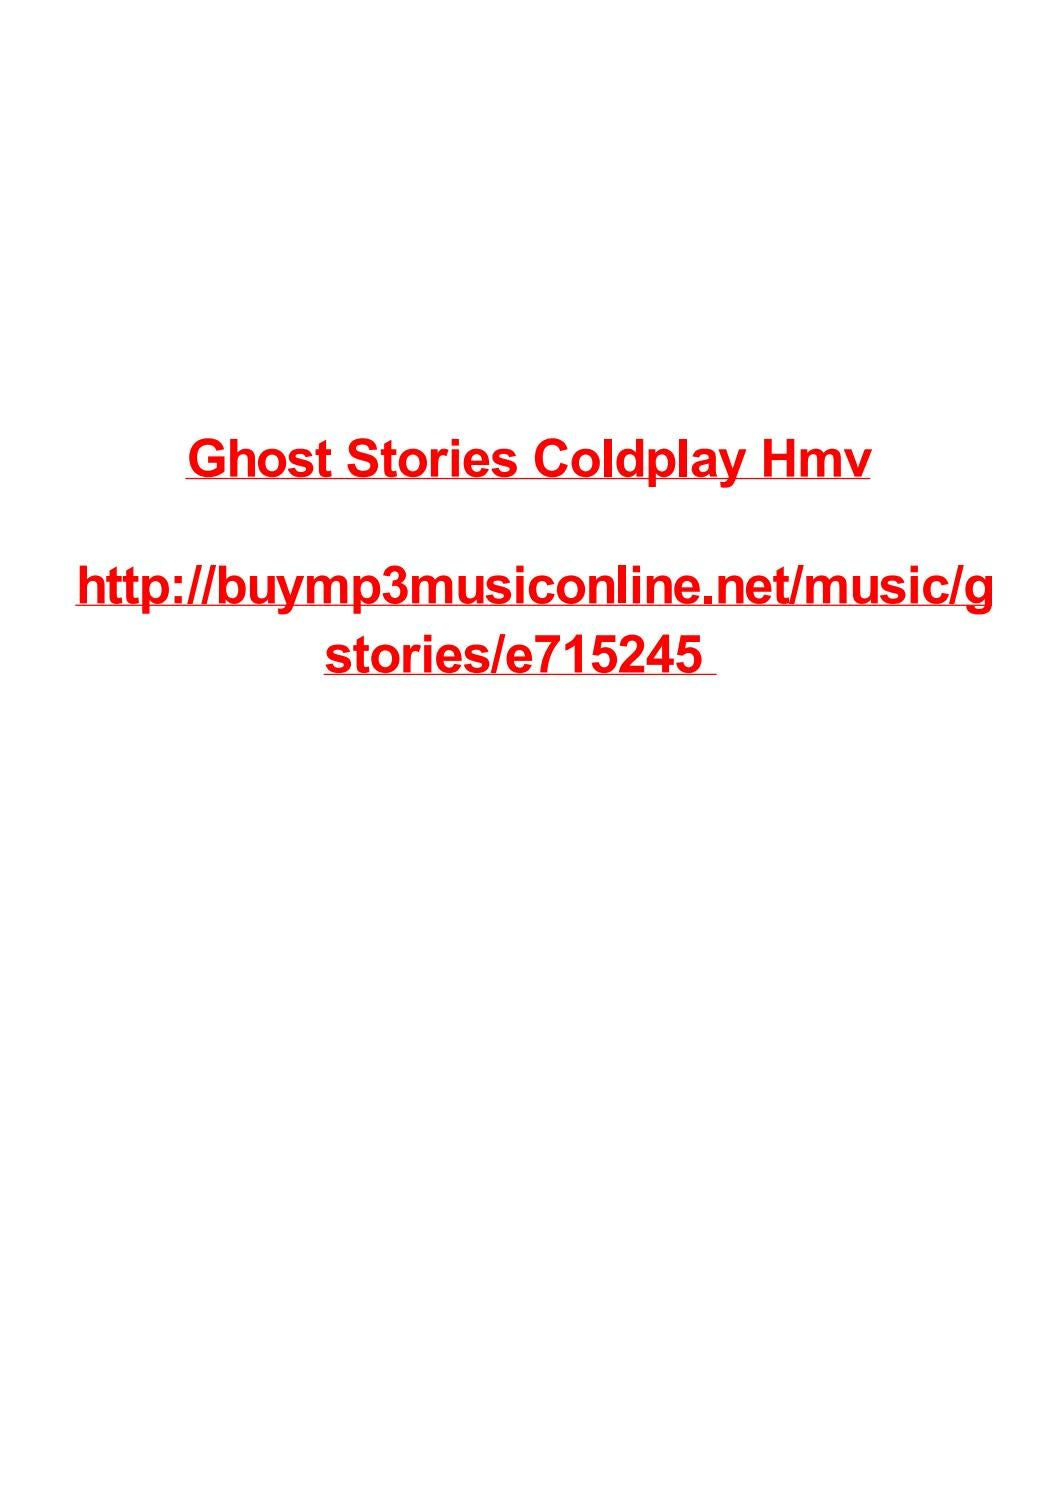 Mickey G Porn Torrent Gratis ghost stories coldplay hmvmax polansky - issuu